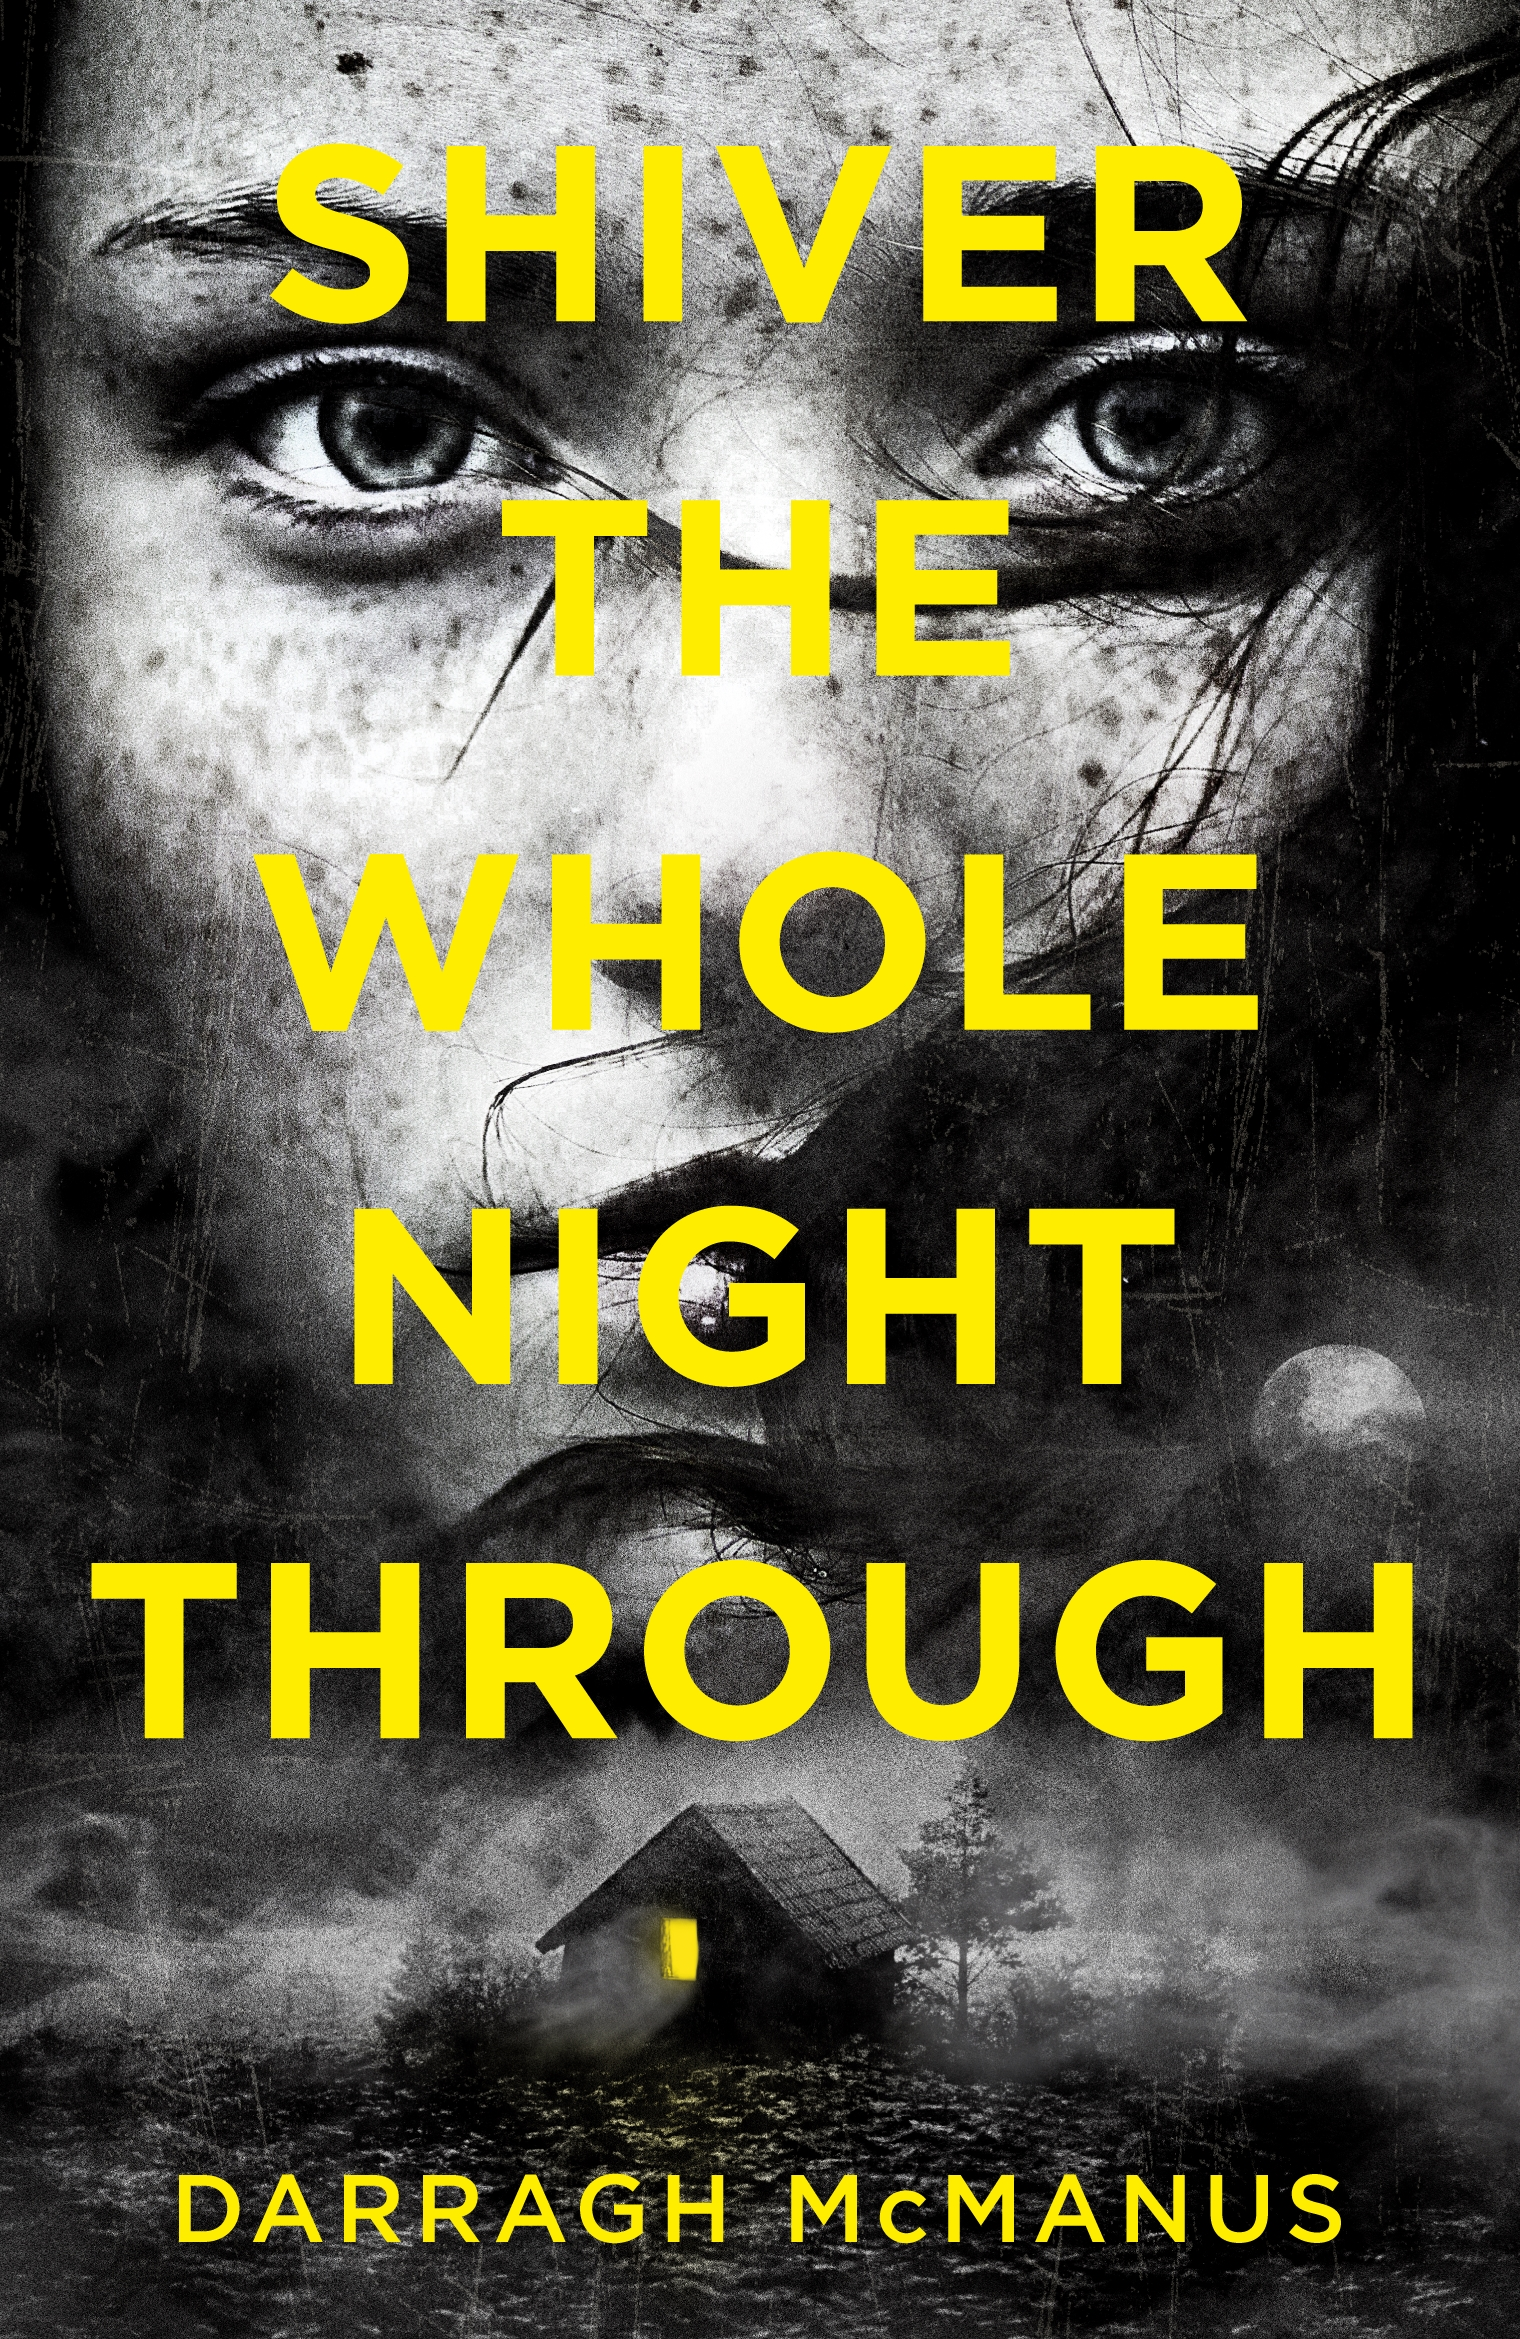 Shiver The Whole Night Through by Darragh McManus